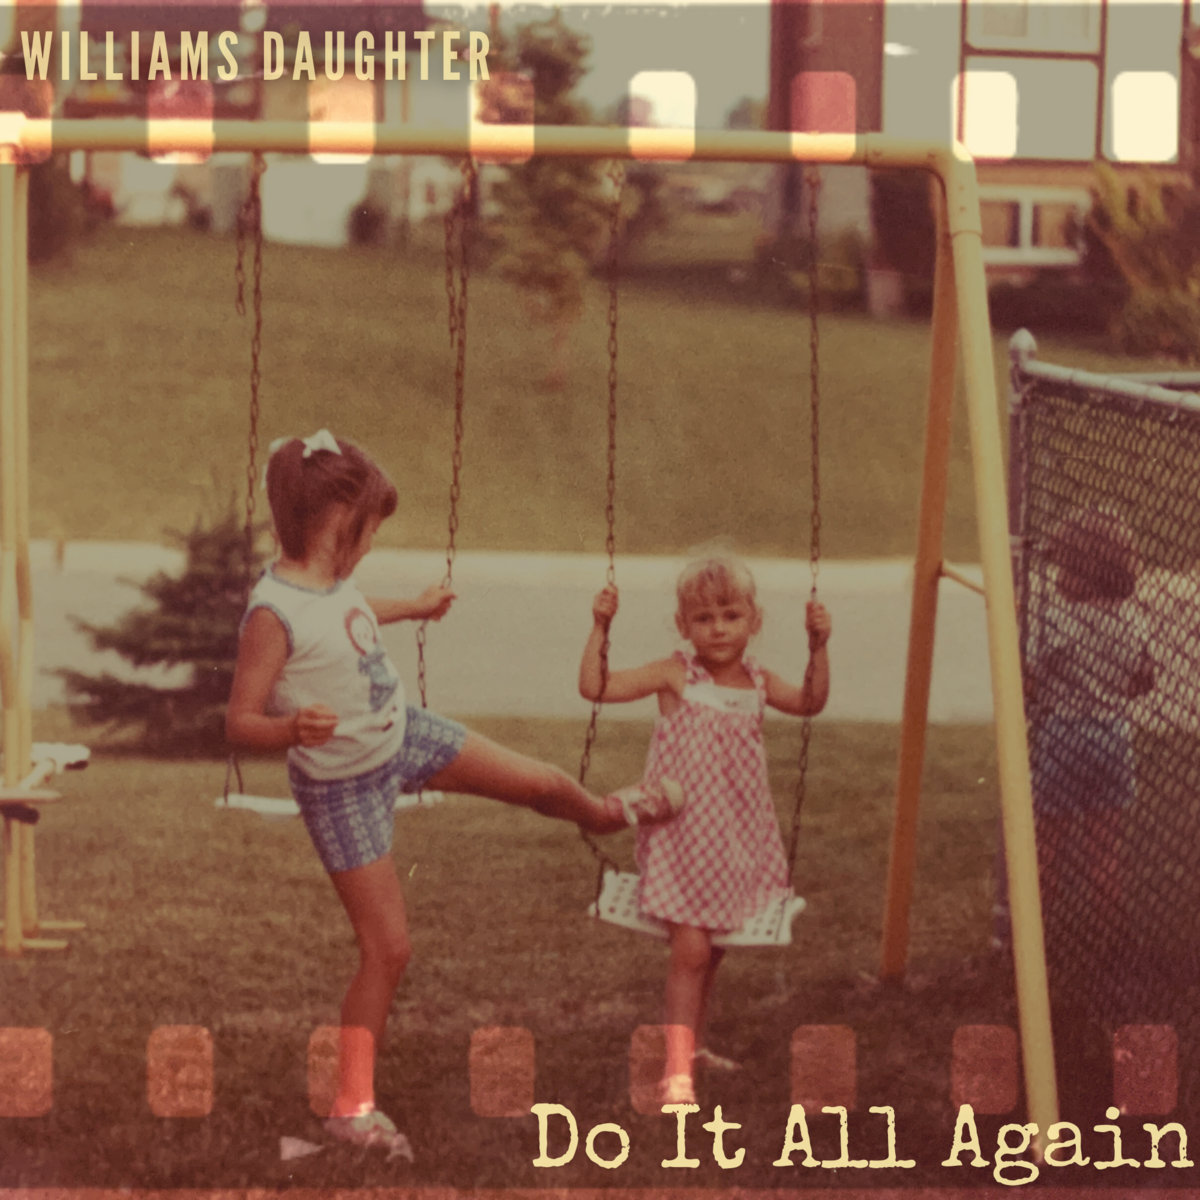 Do It All Again by Williams Daughter